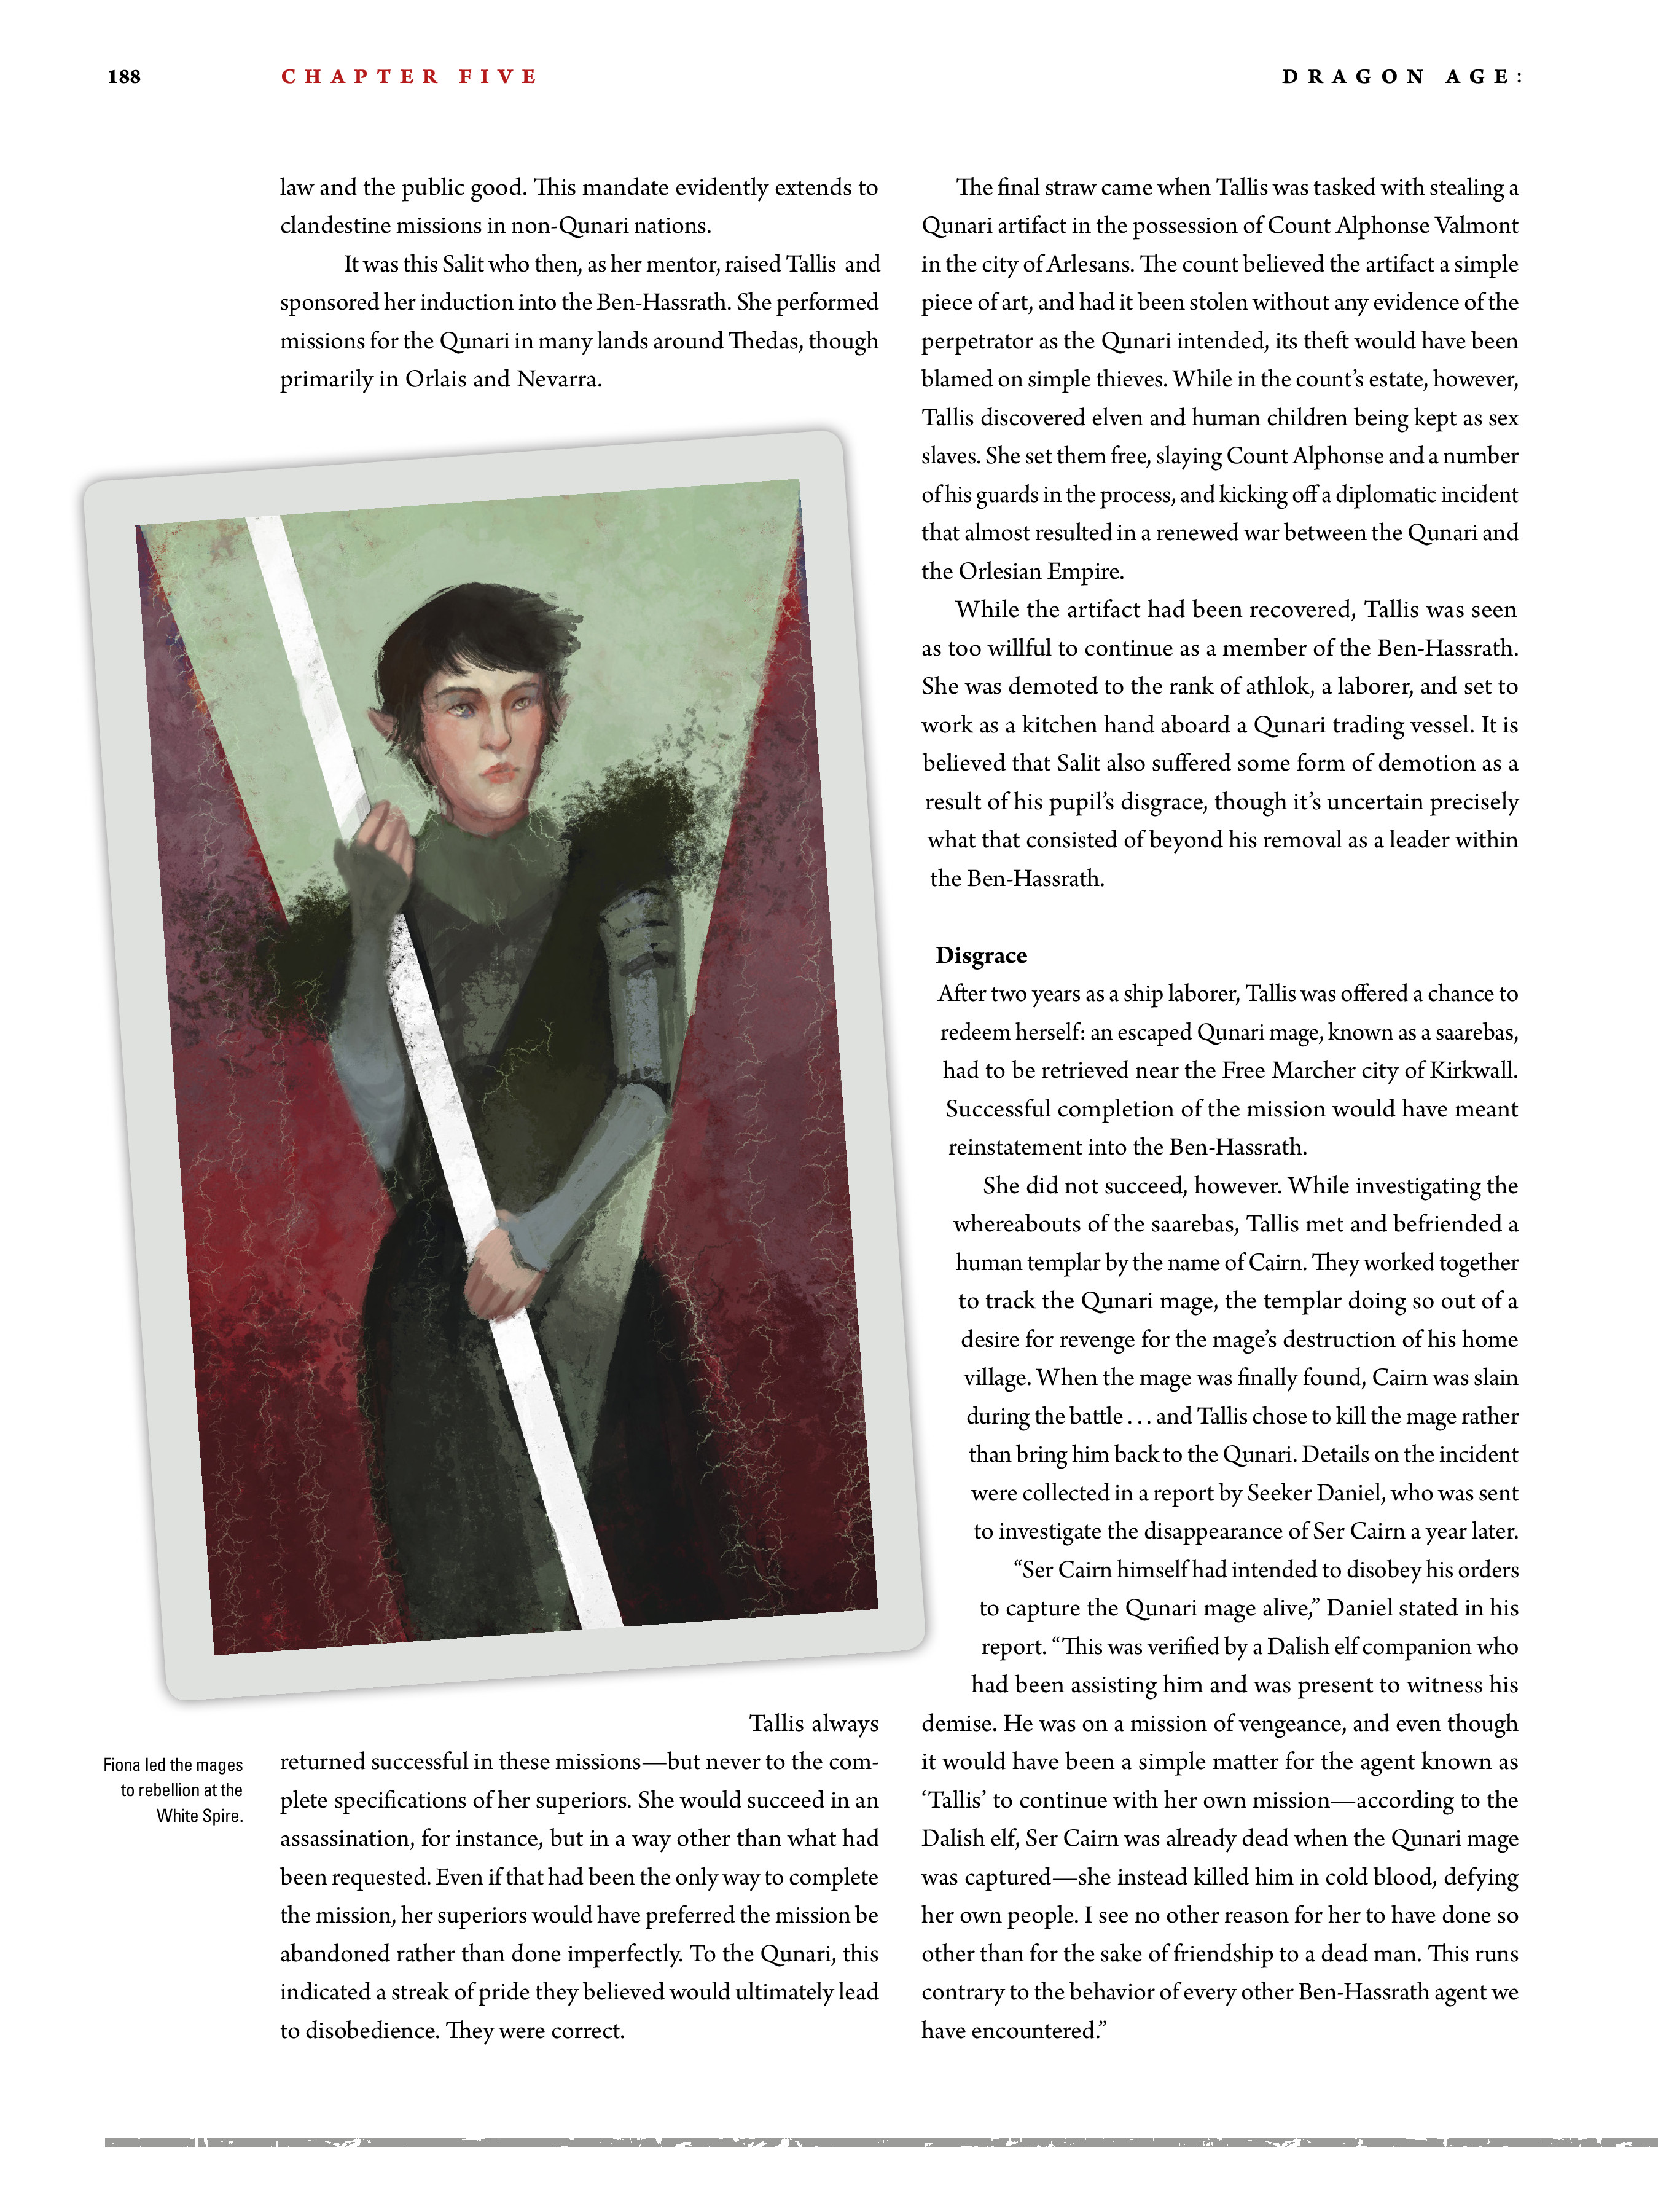 Read online Dragon Age: The World of Thedas comic -  Issue # TPB 2 - 183